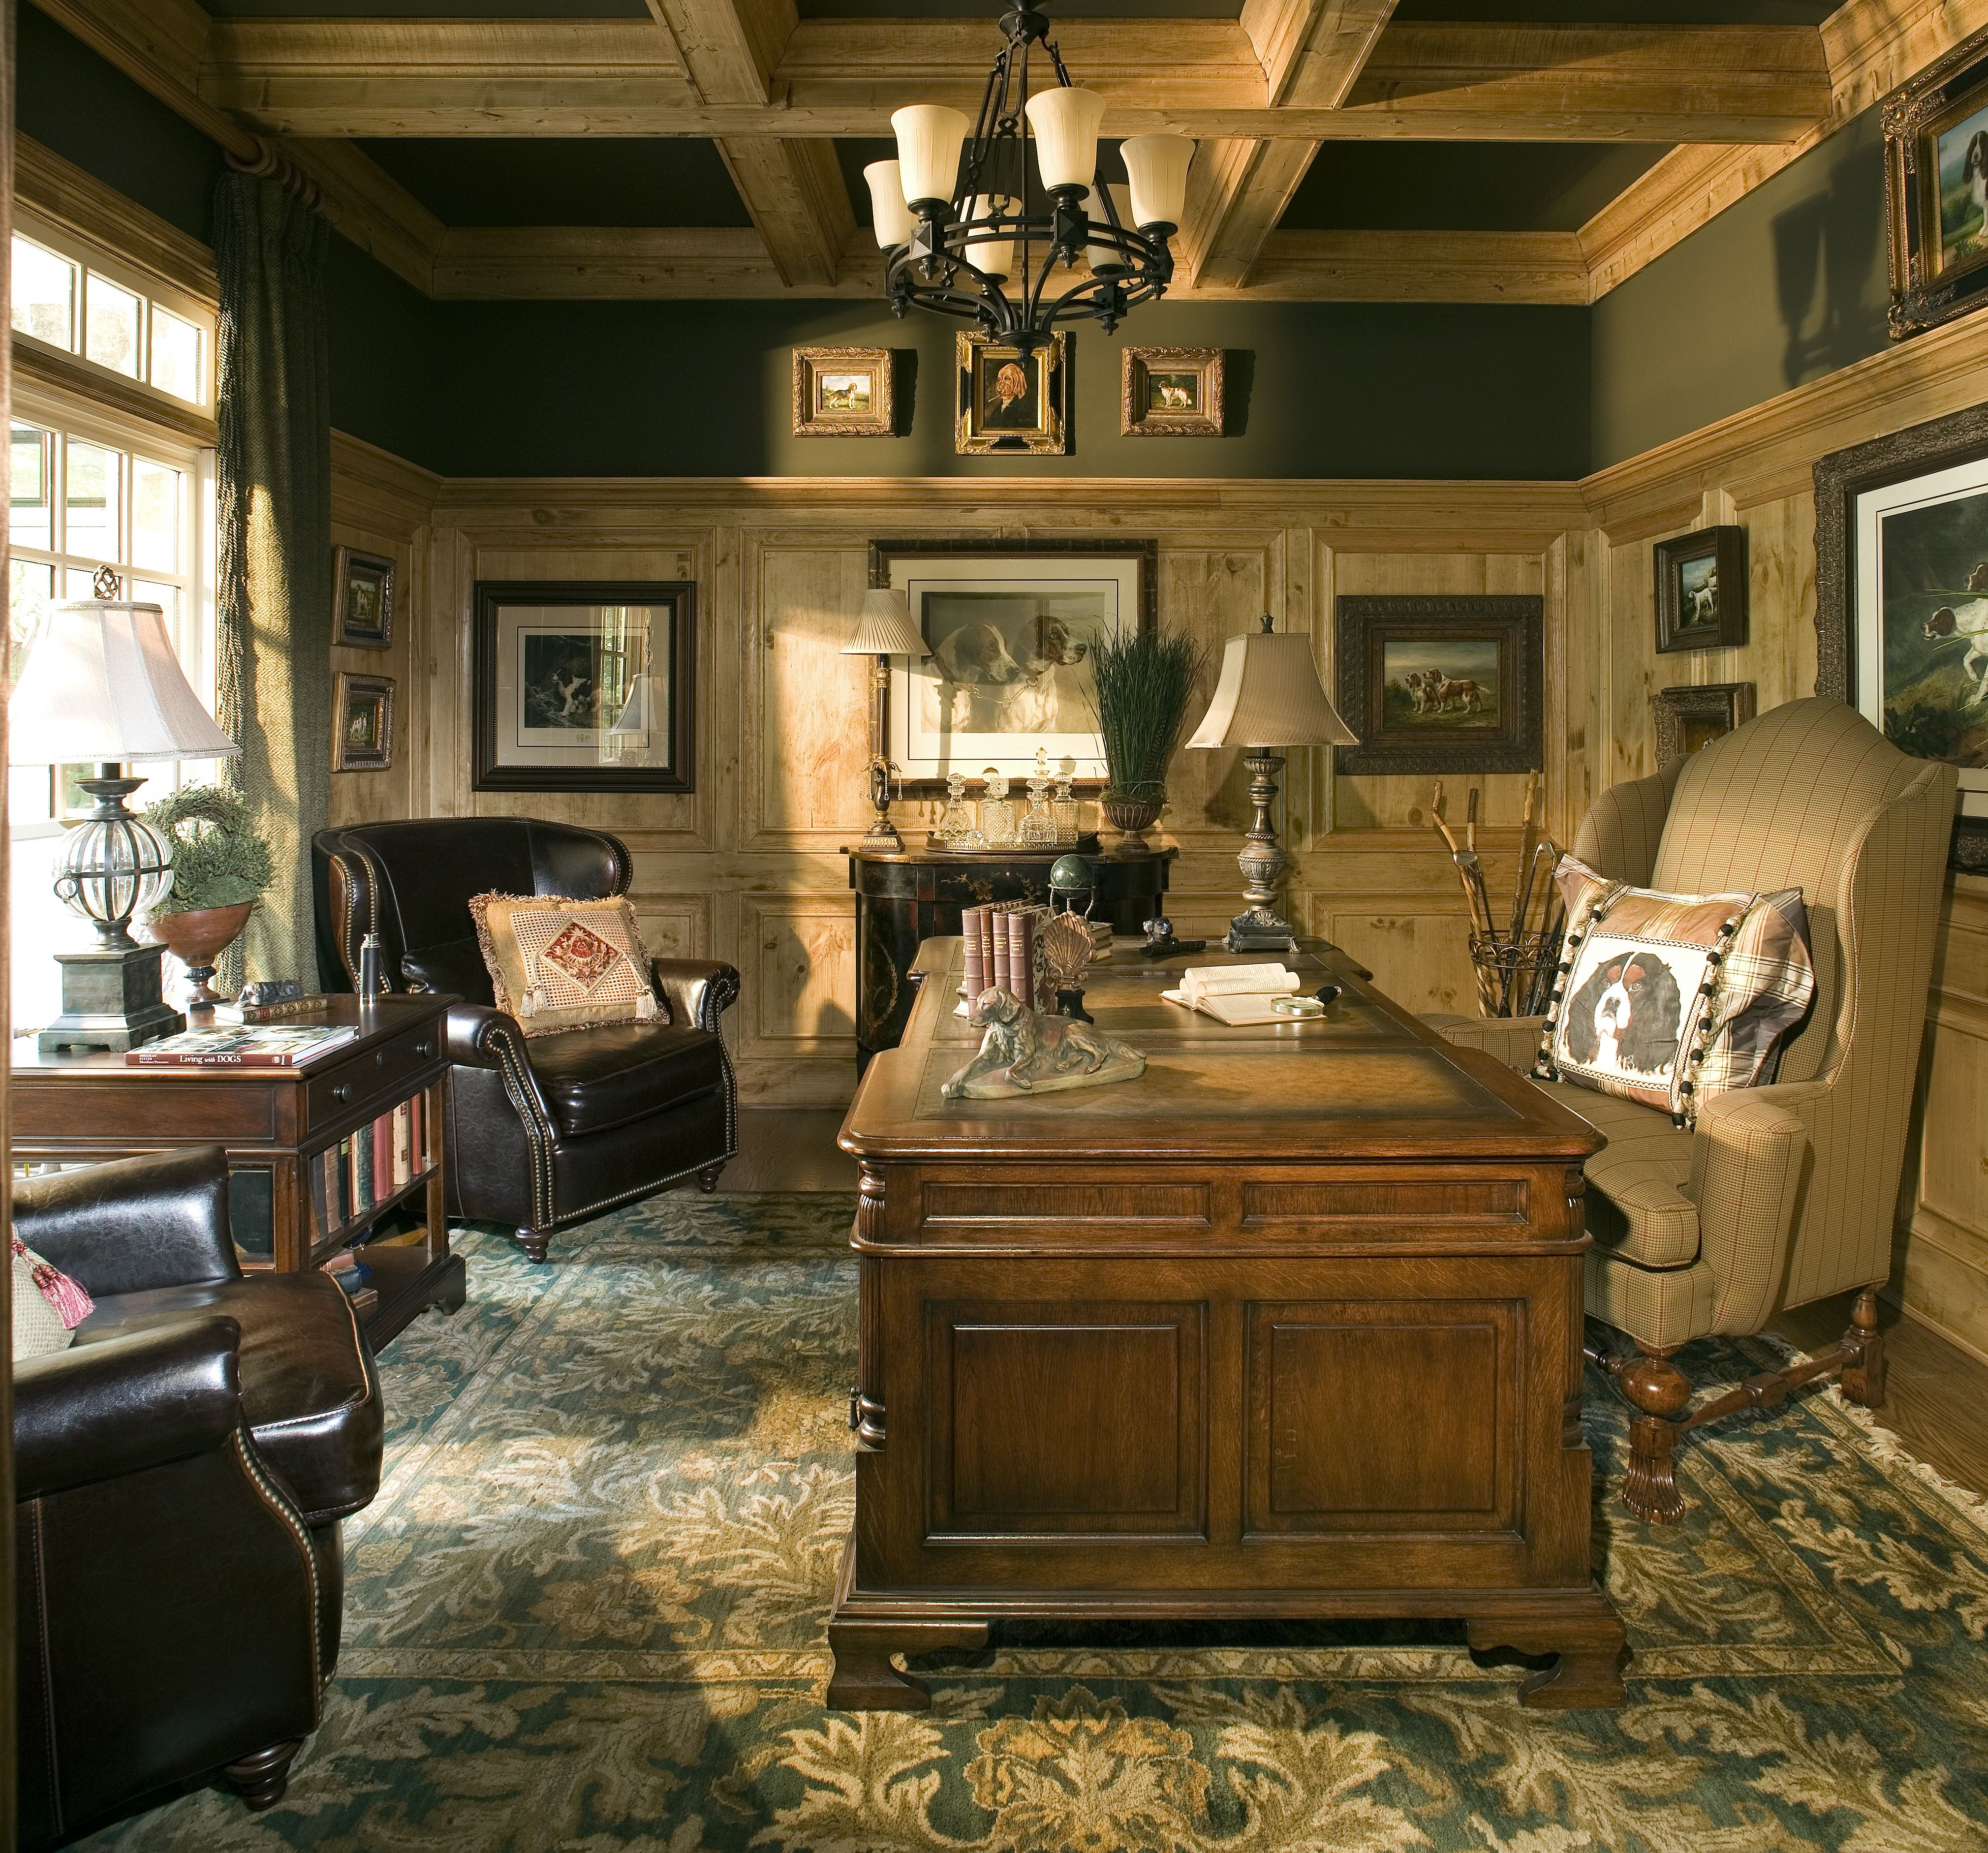 Traditional Study Room: Can I Paint The Dark Wood Paneling?